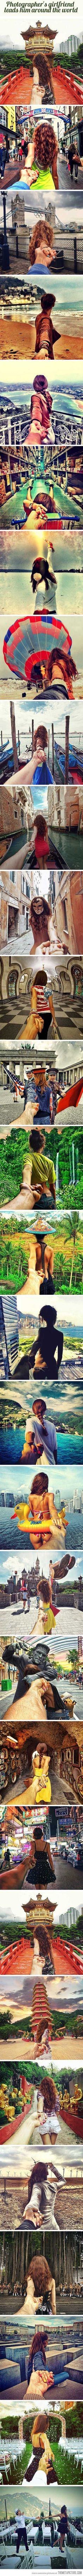 Darling, let's be adventurerers - this would be a fun photo project on a road trip or adventure!! ♠ re-pinned by  http://wfpblogs.com/